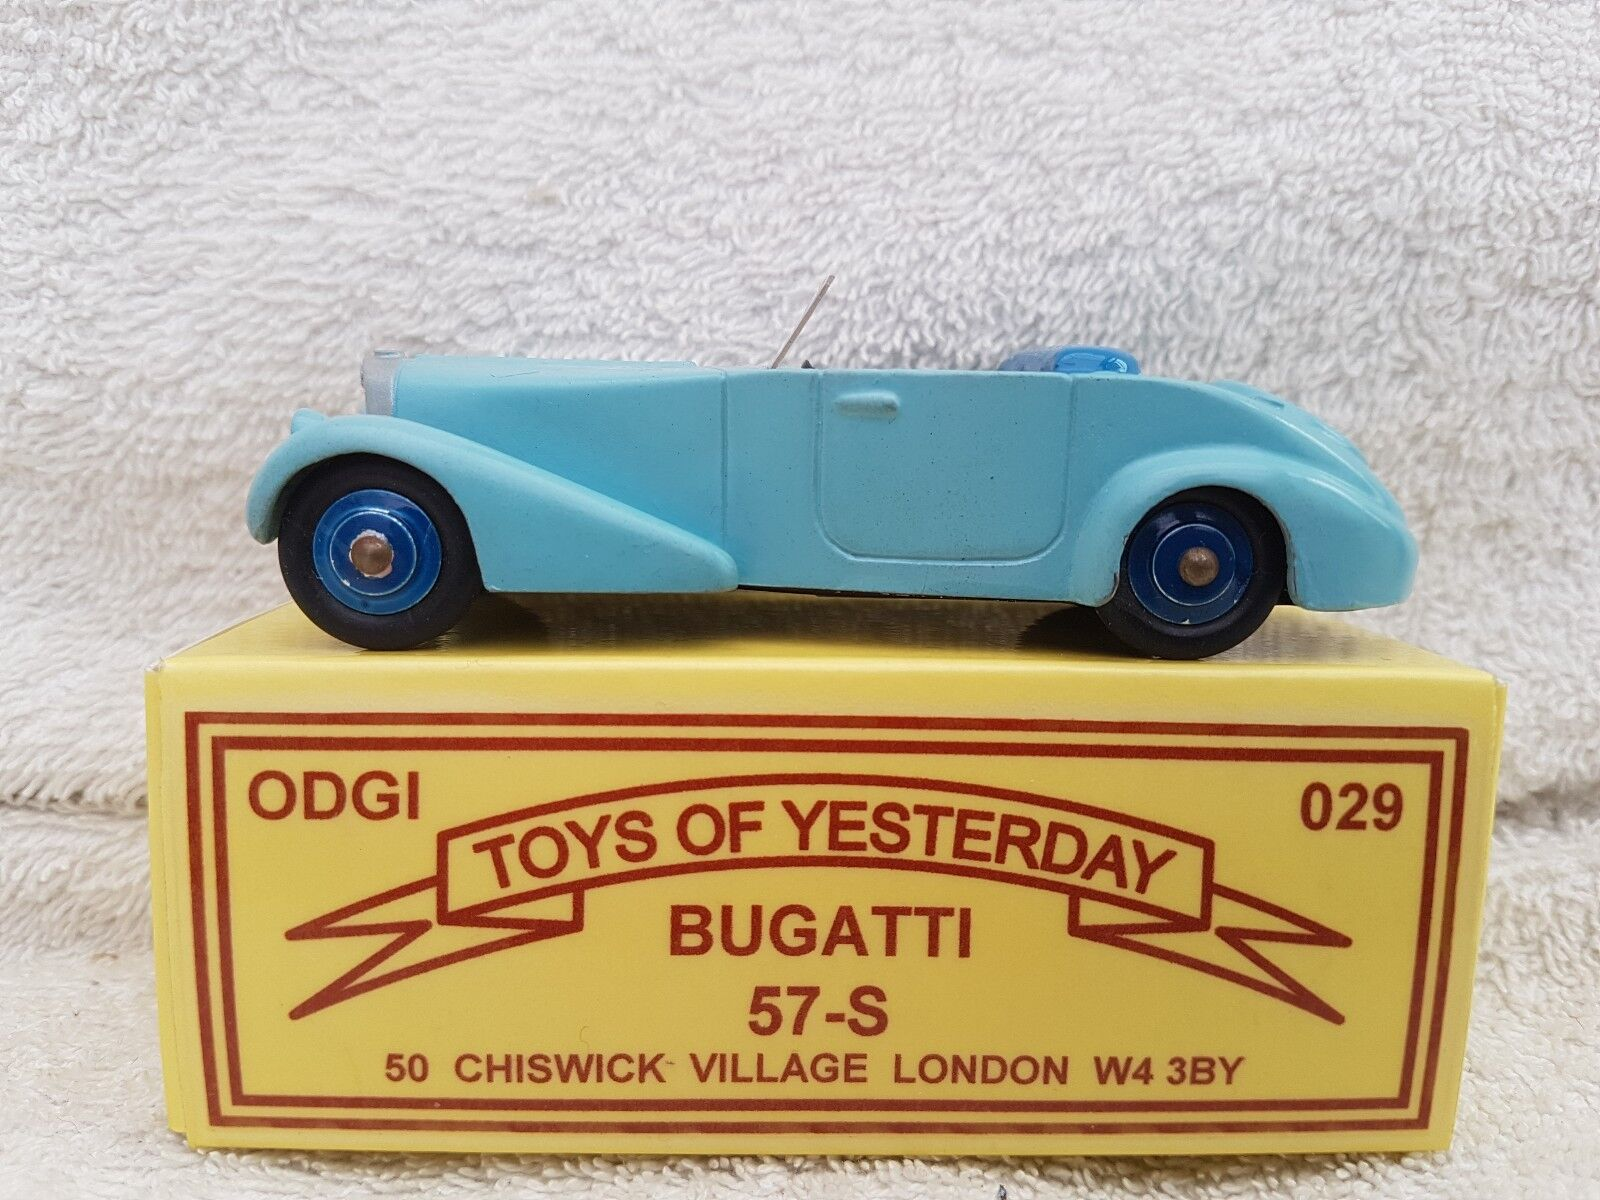 ODGI Toys Of Yesteryear White Metal Bugatti 57 S In Sky bluee 029